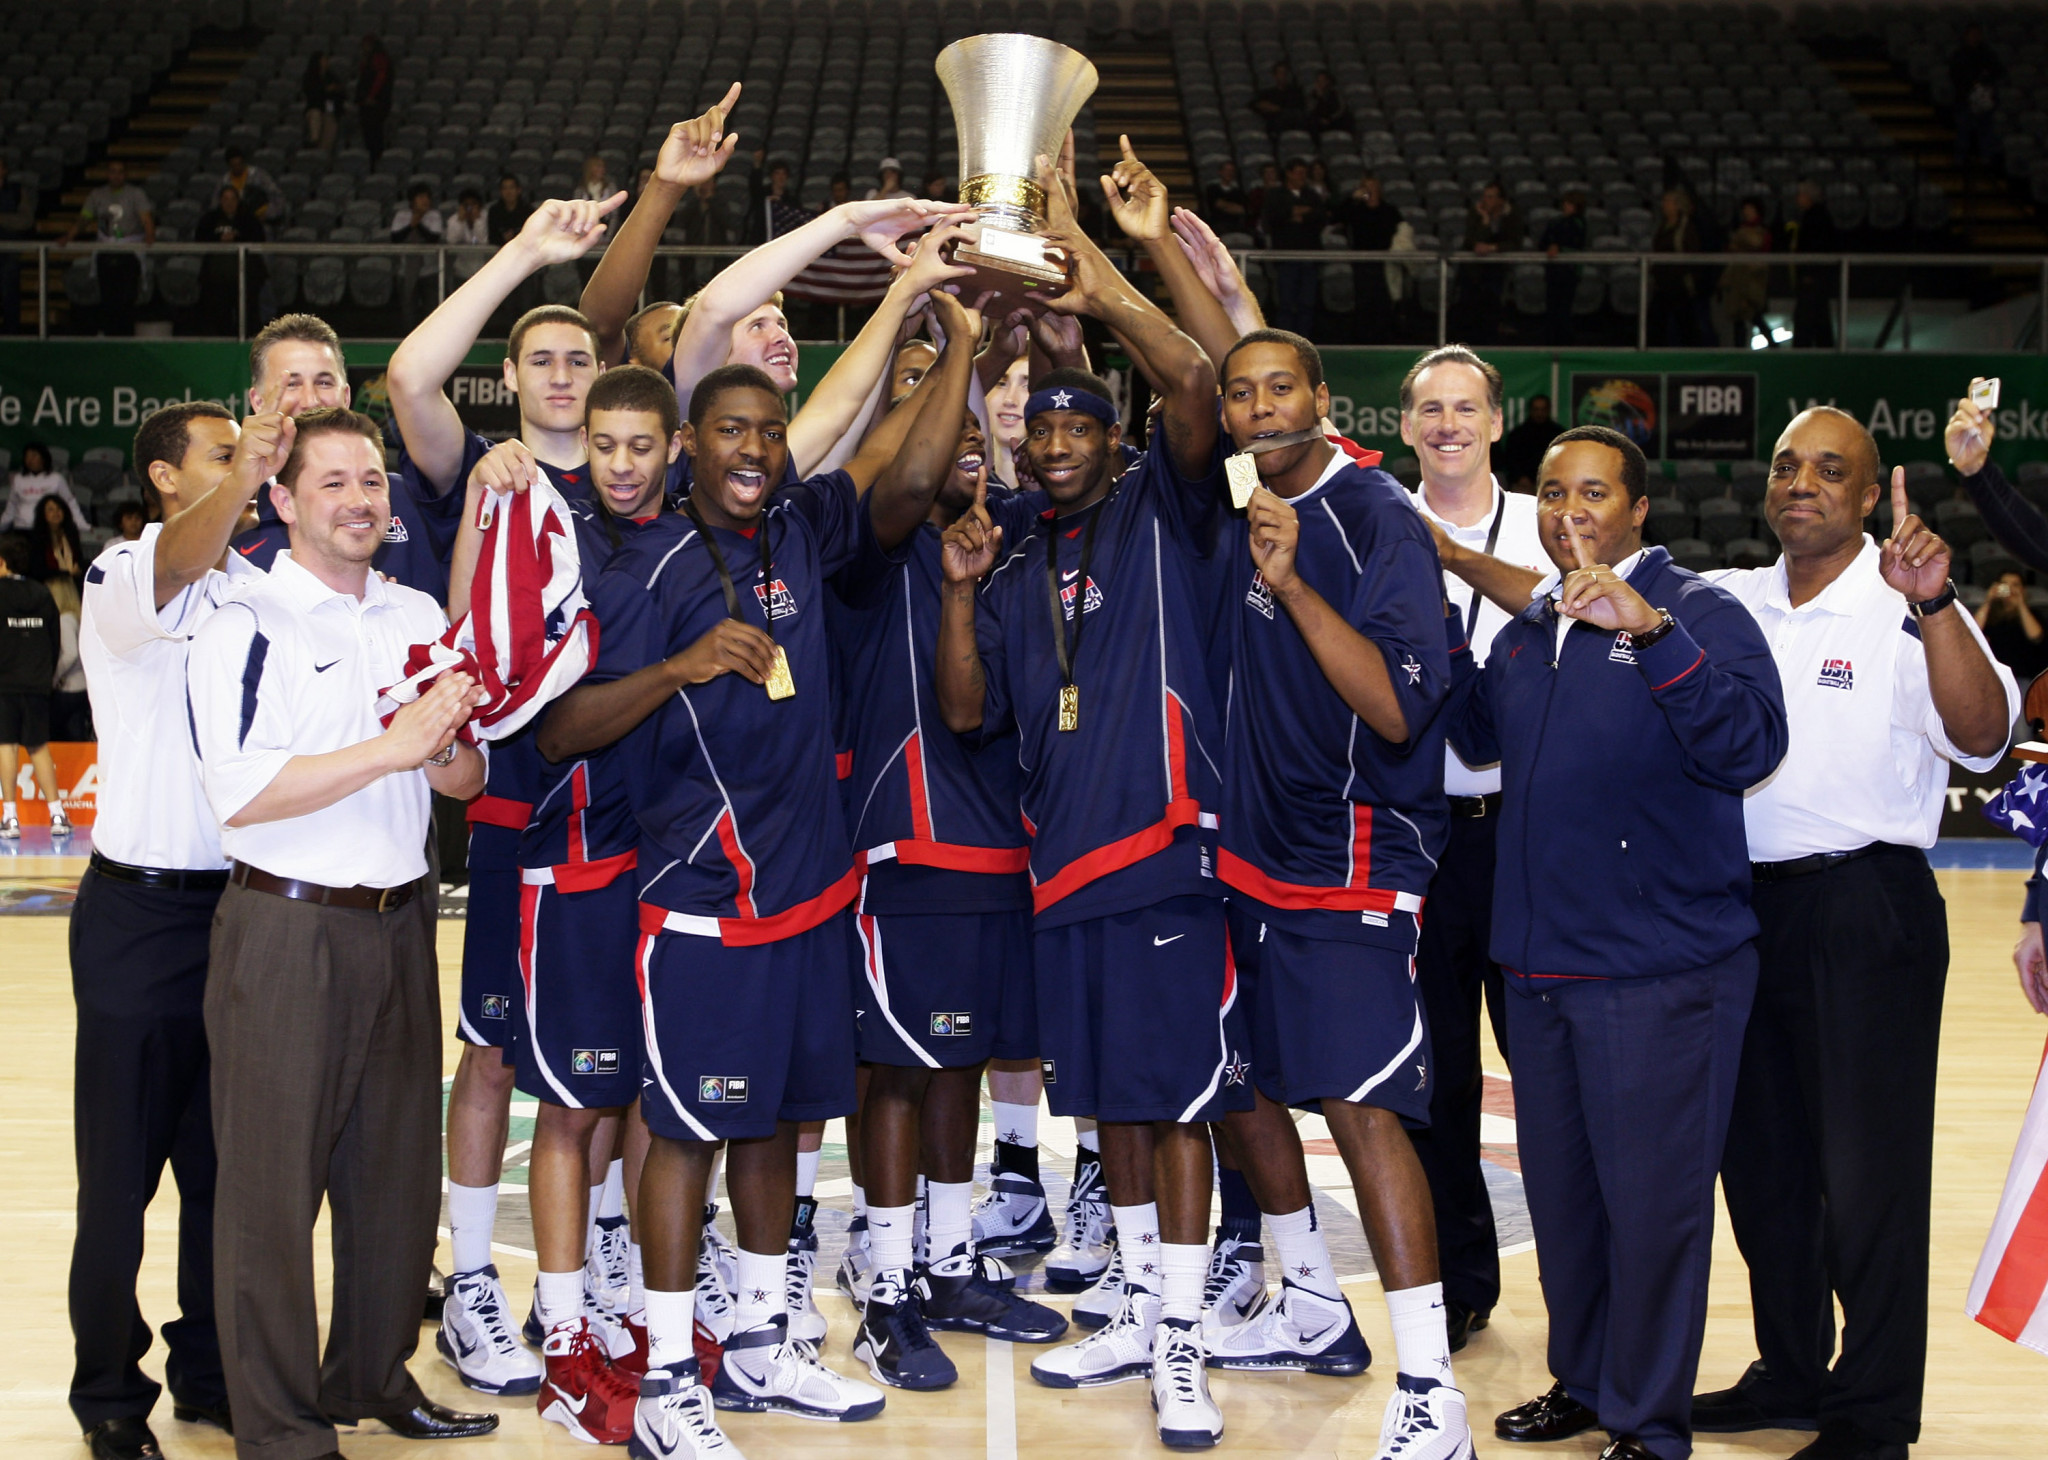 United States and Canada maintain unbeaten records as they reach FIBA Under-19 World Cup semi-finals